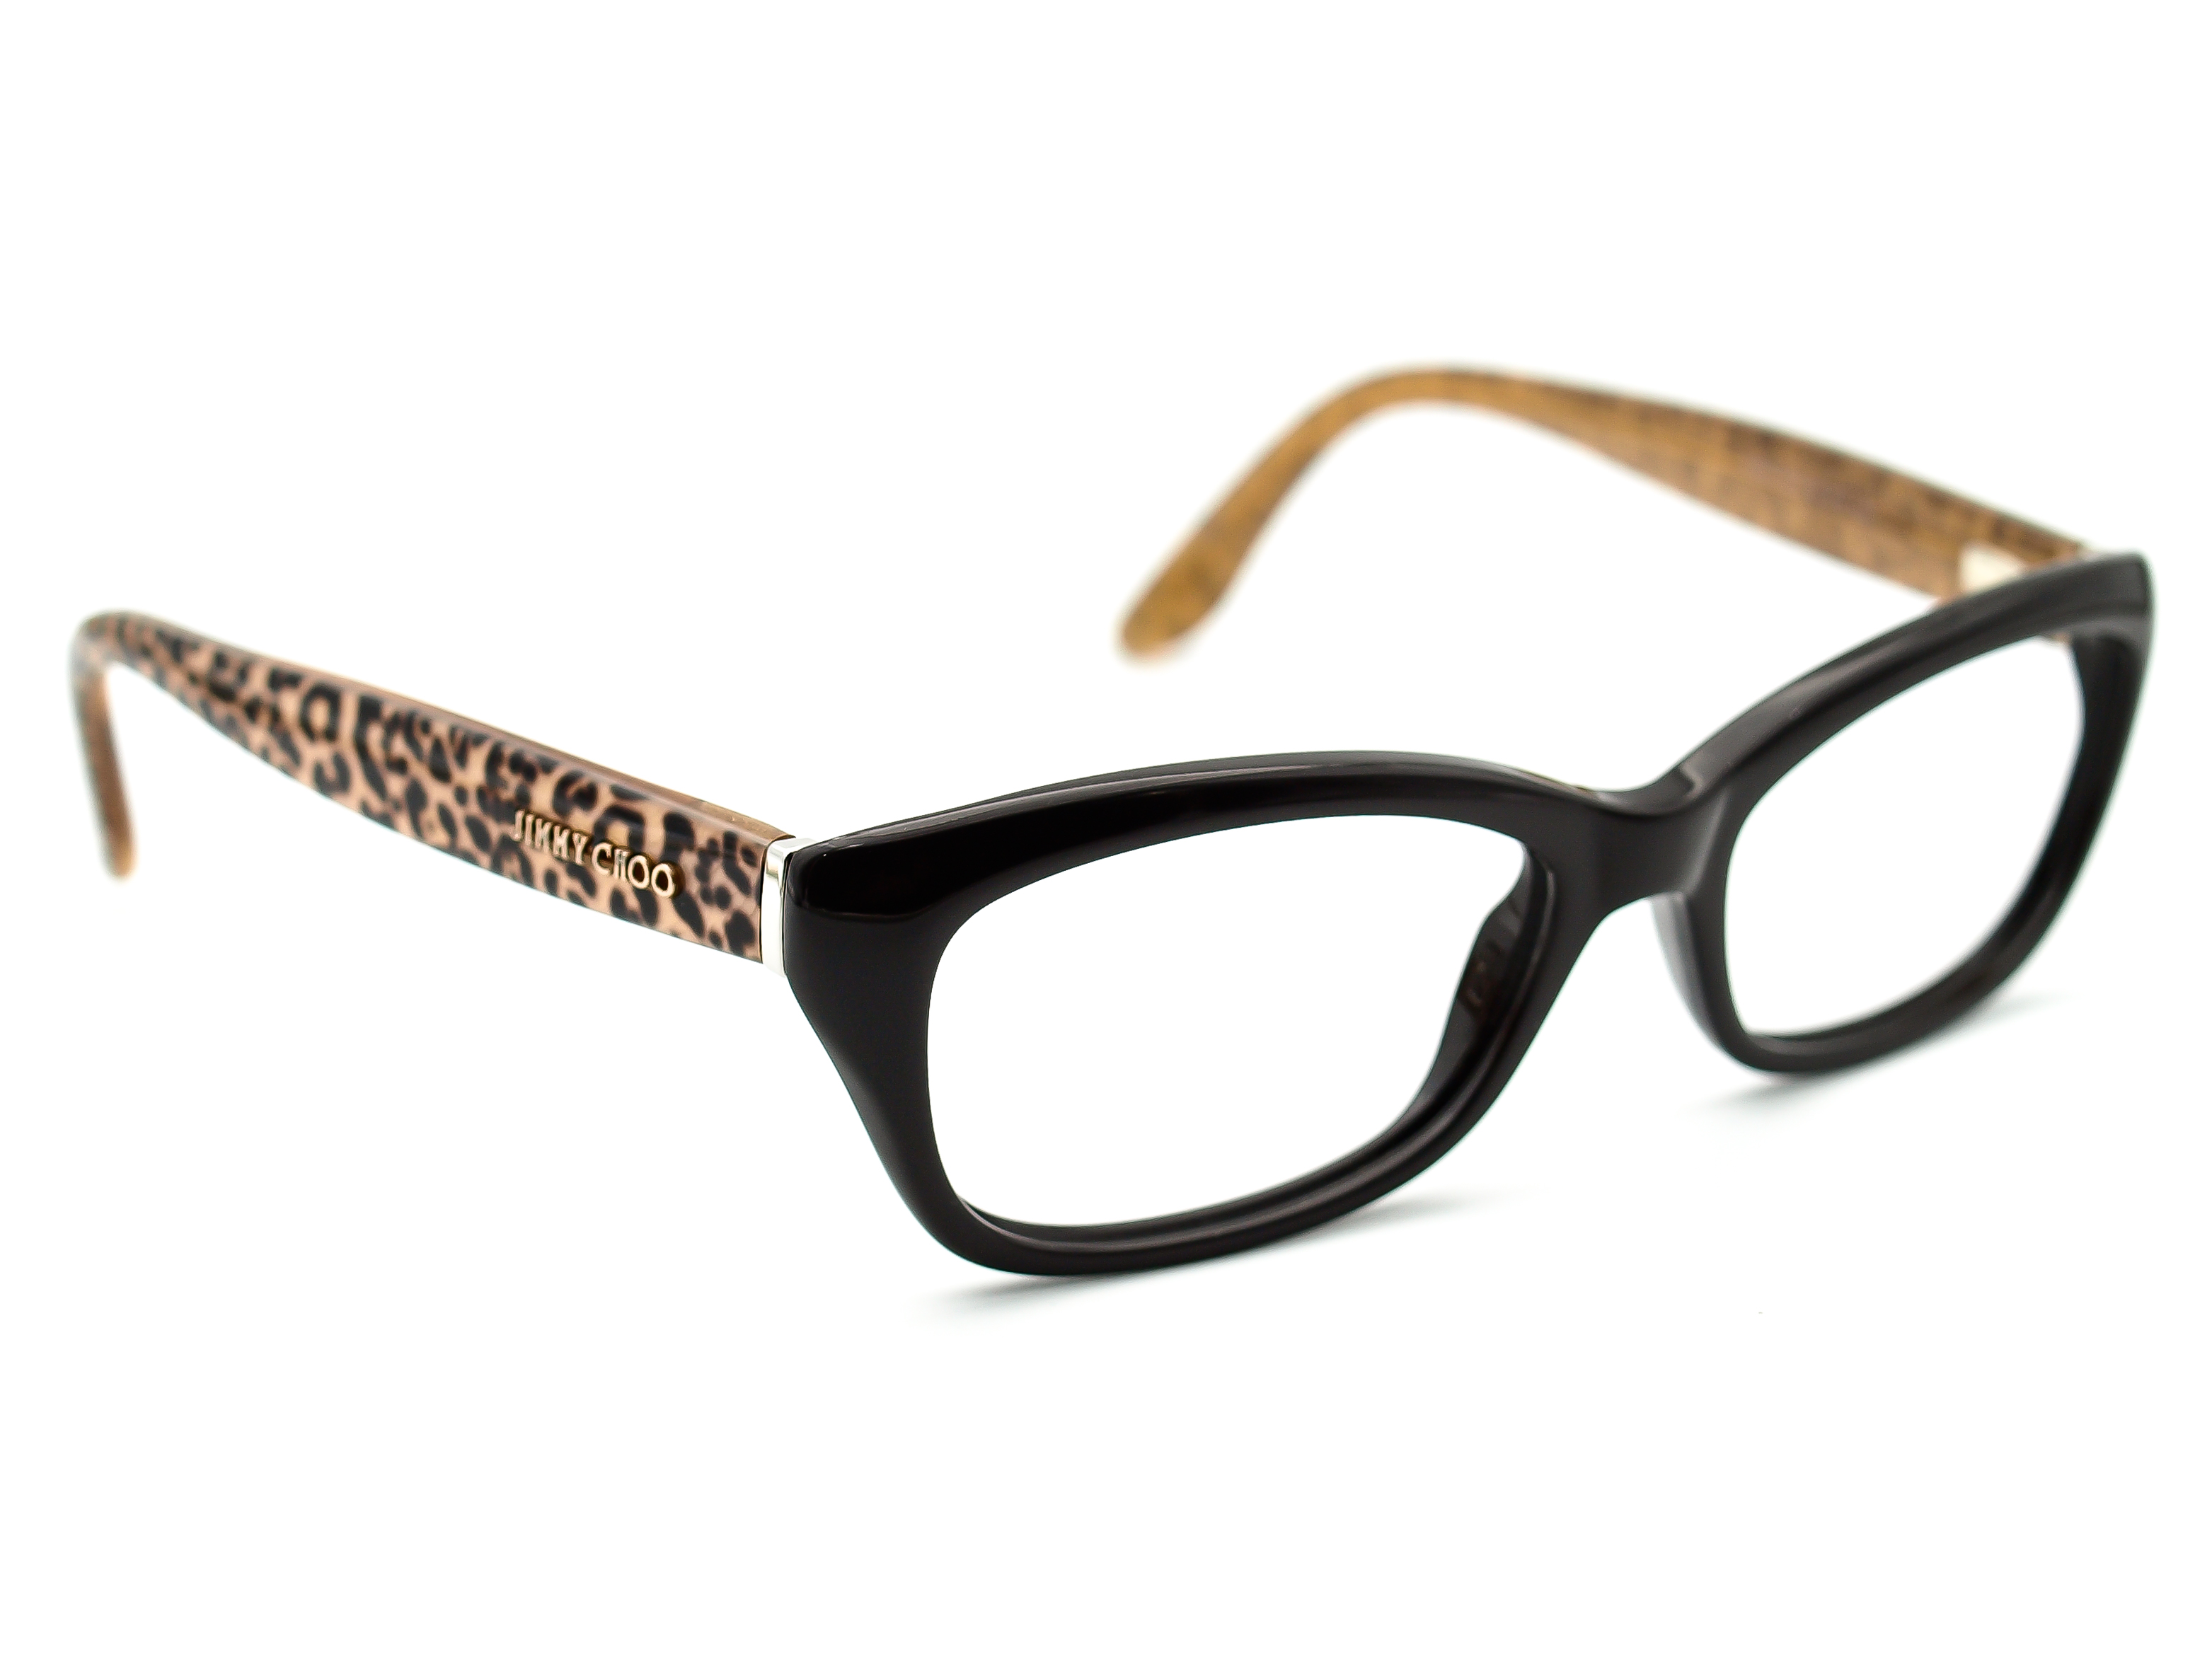 Jimmy Choo 82 8T4 Eyeglasses